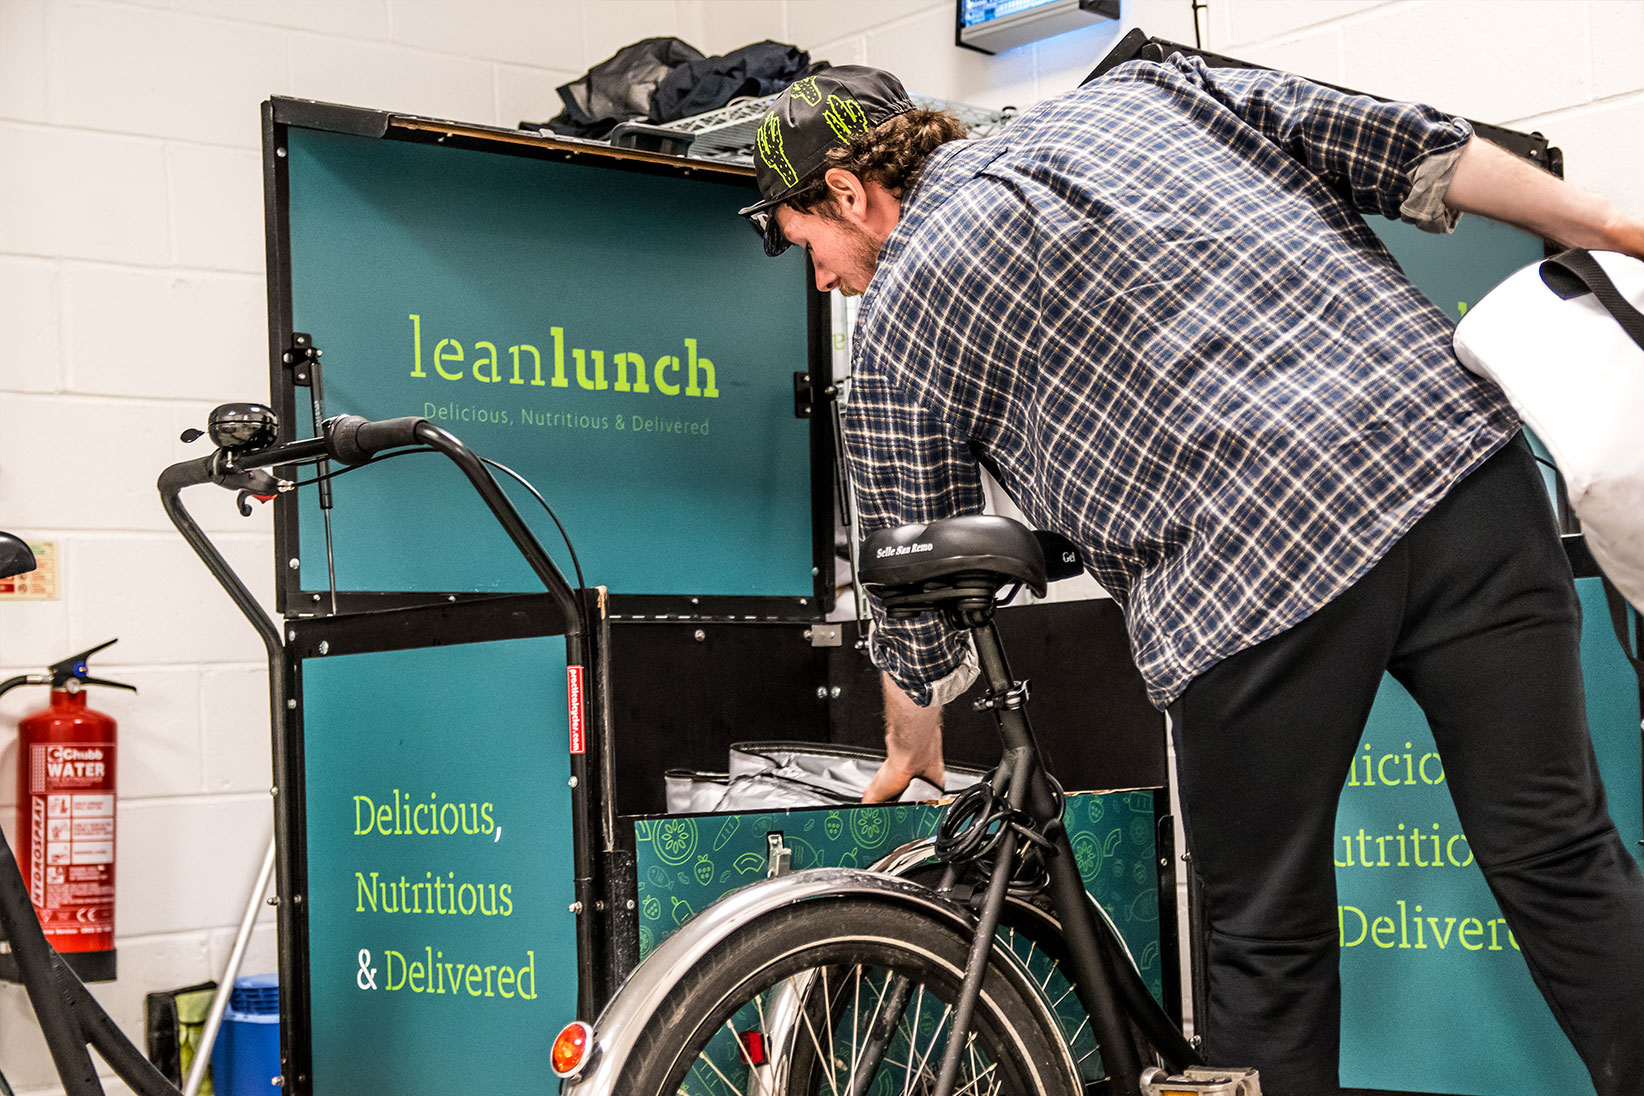 lean-lunch-event-photography-by-orfi-media-2